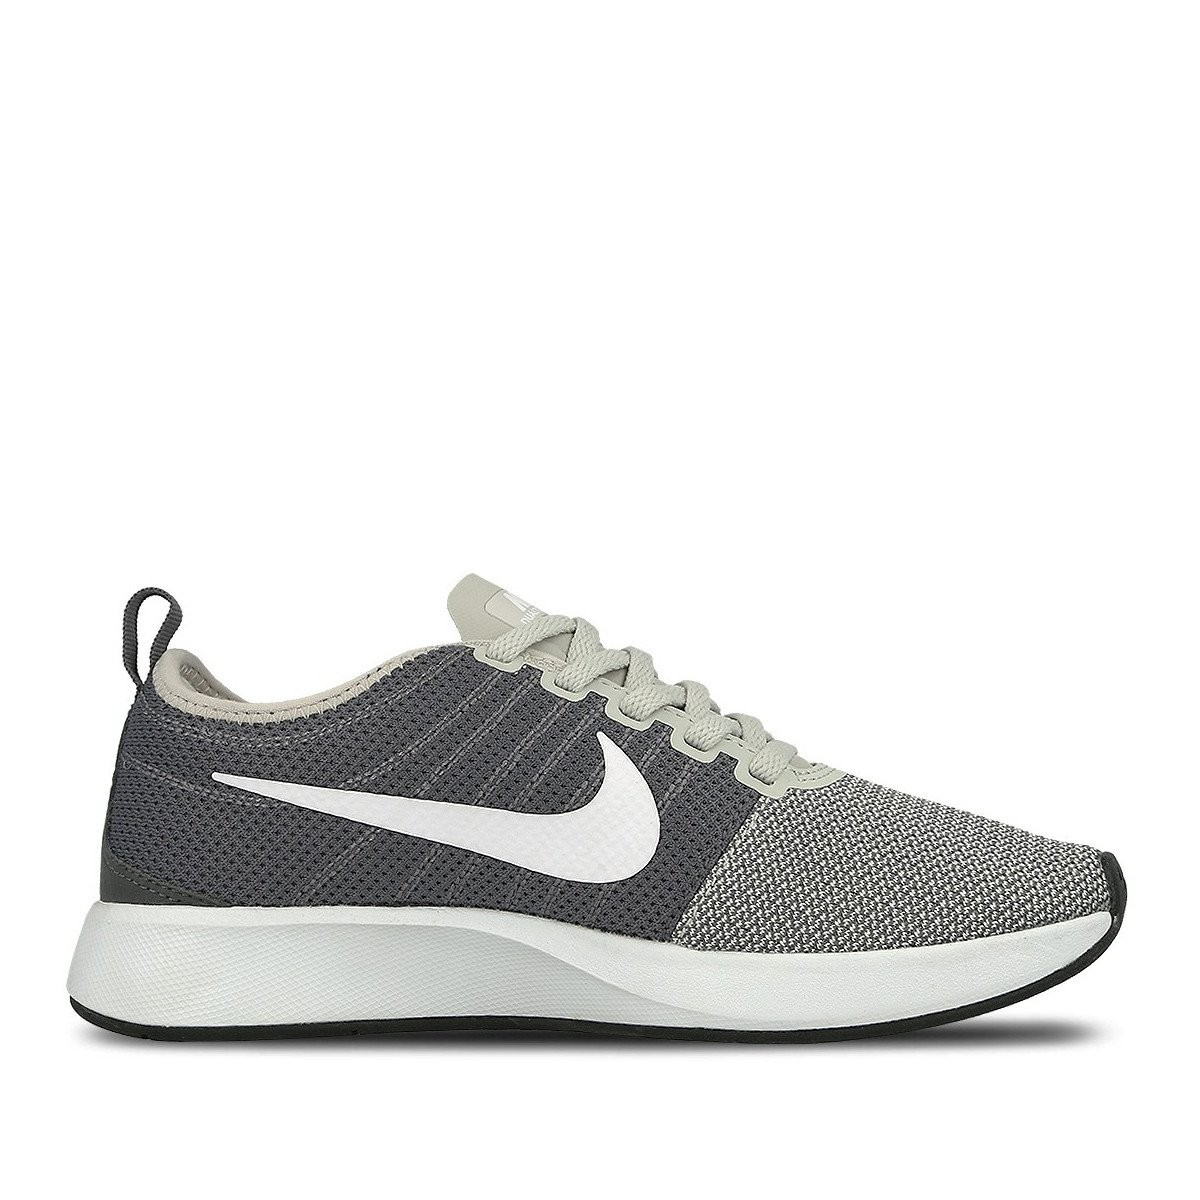 917682-004 Nike Dames Dualtone Racer Schoenen - Light Bone/Wit